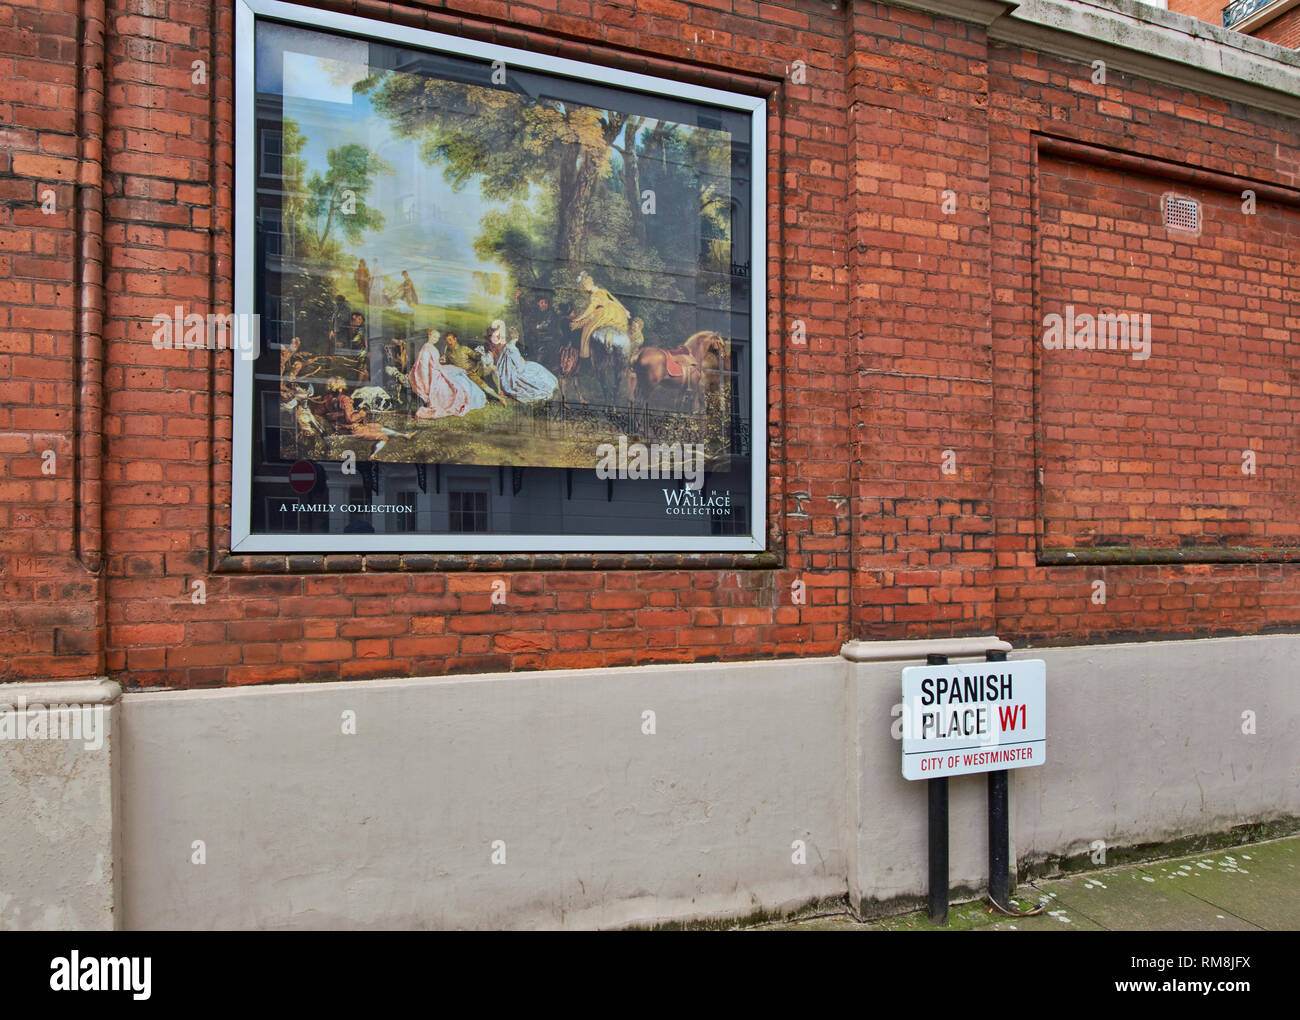 LONDON THE WALLACE COLLECTION HERTFORD HOUSE MANCHESTER SQUARE BILD AN DER WAND IN SPANISCH ORT Stockbild